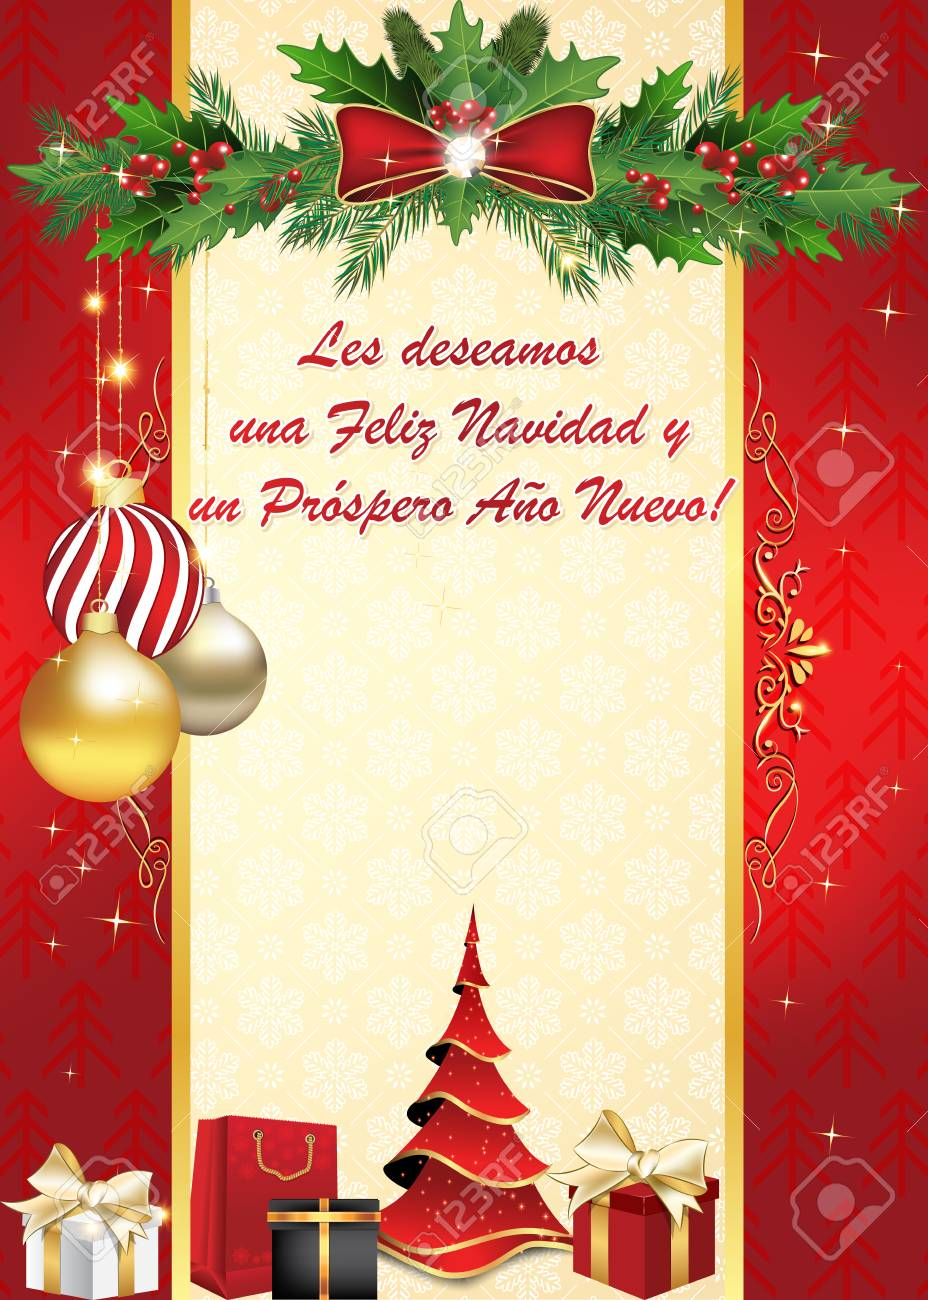 We wish you merry christmas and happy new year spanish language we wish you merry christmas and happy new year spanish language les deseamos una kristyandbryce Images